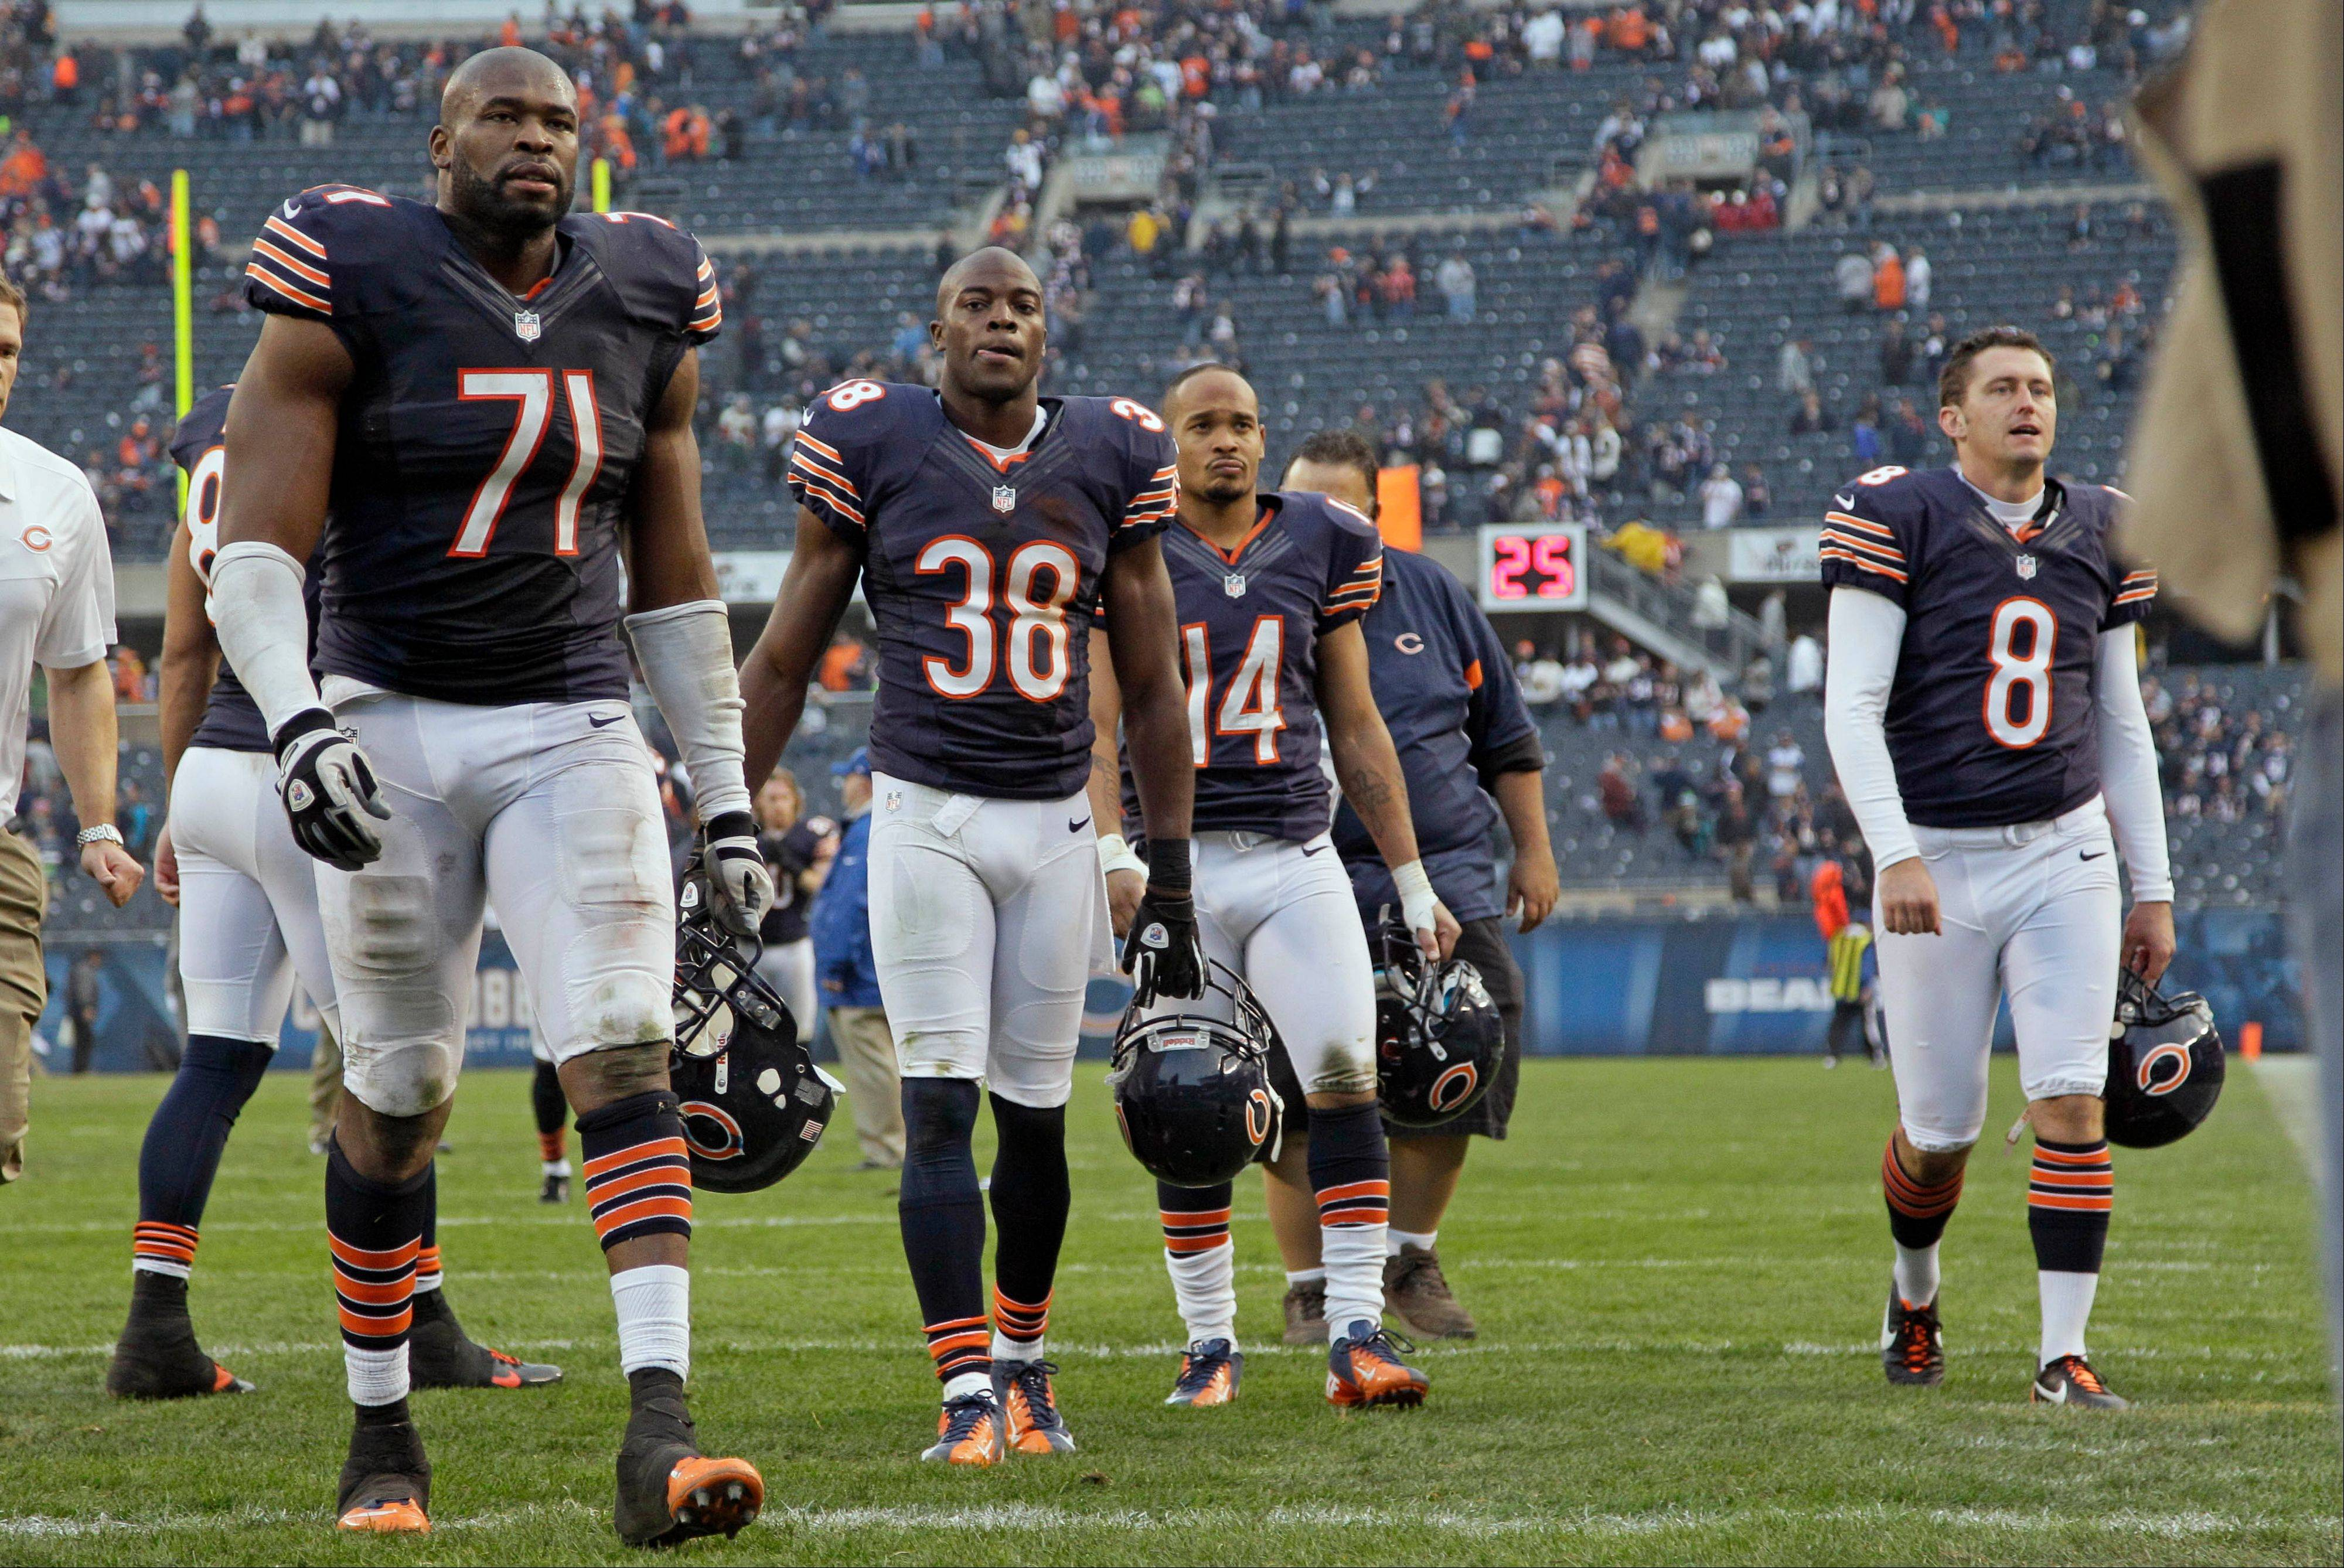 Israel Idonije (71), Zack Bowman (38), Eric Weems (14) and Adam Podlesh (8) walk off the field after the Bears' 23-17 loss in overtime to Seattle on Sunday at Soldier Field.